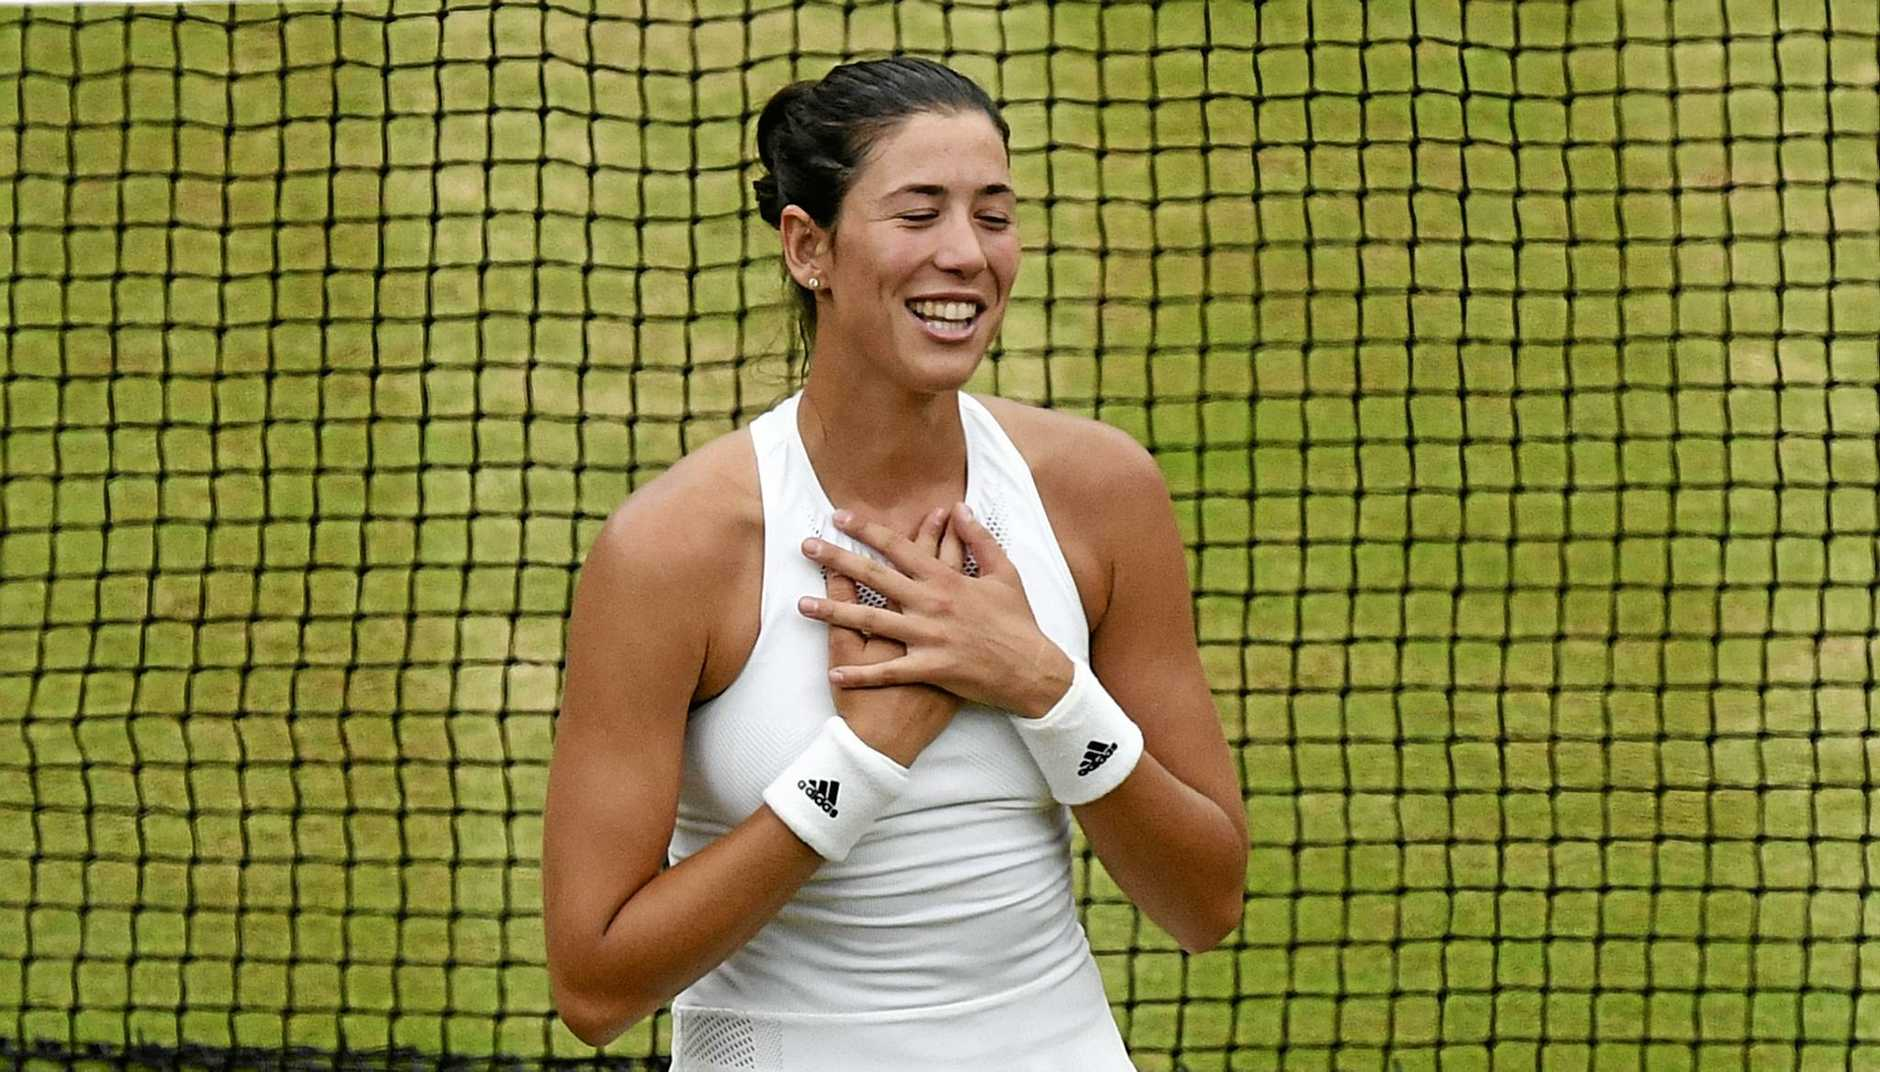 Spain's Garbine Muguruza celebrates after defeating Venus Williams of the United States in the Women's Singles final match on day twelve at the Wimbledon Tennis Championships in London Saturday, July 15, 2017. (Facundo Arrizabalaga/Pool Photo via AP)